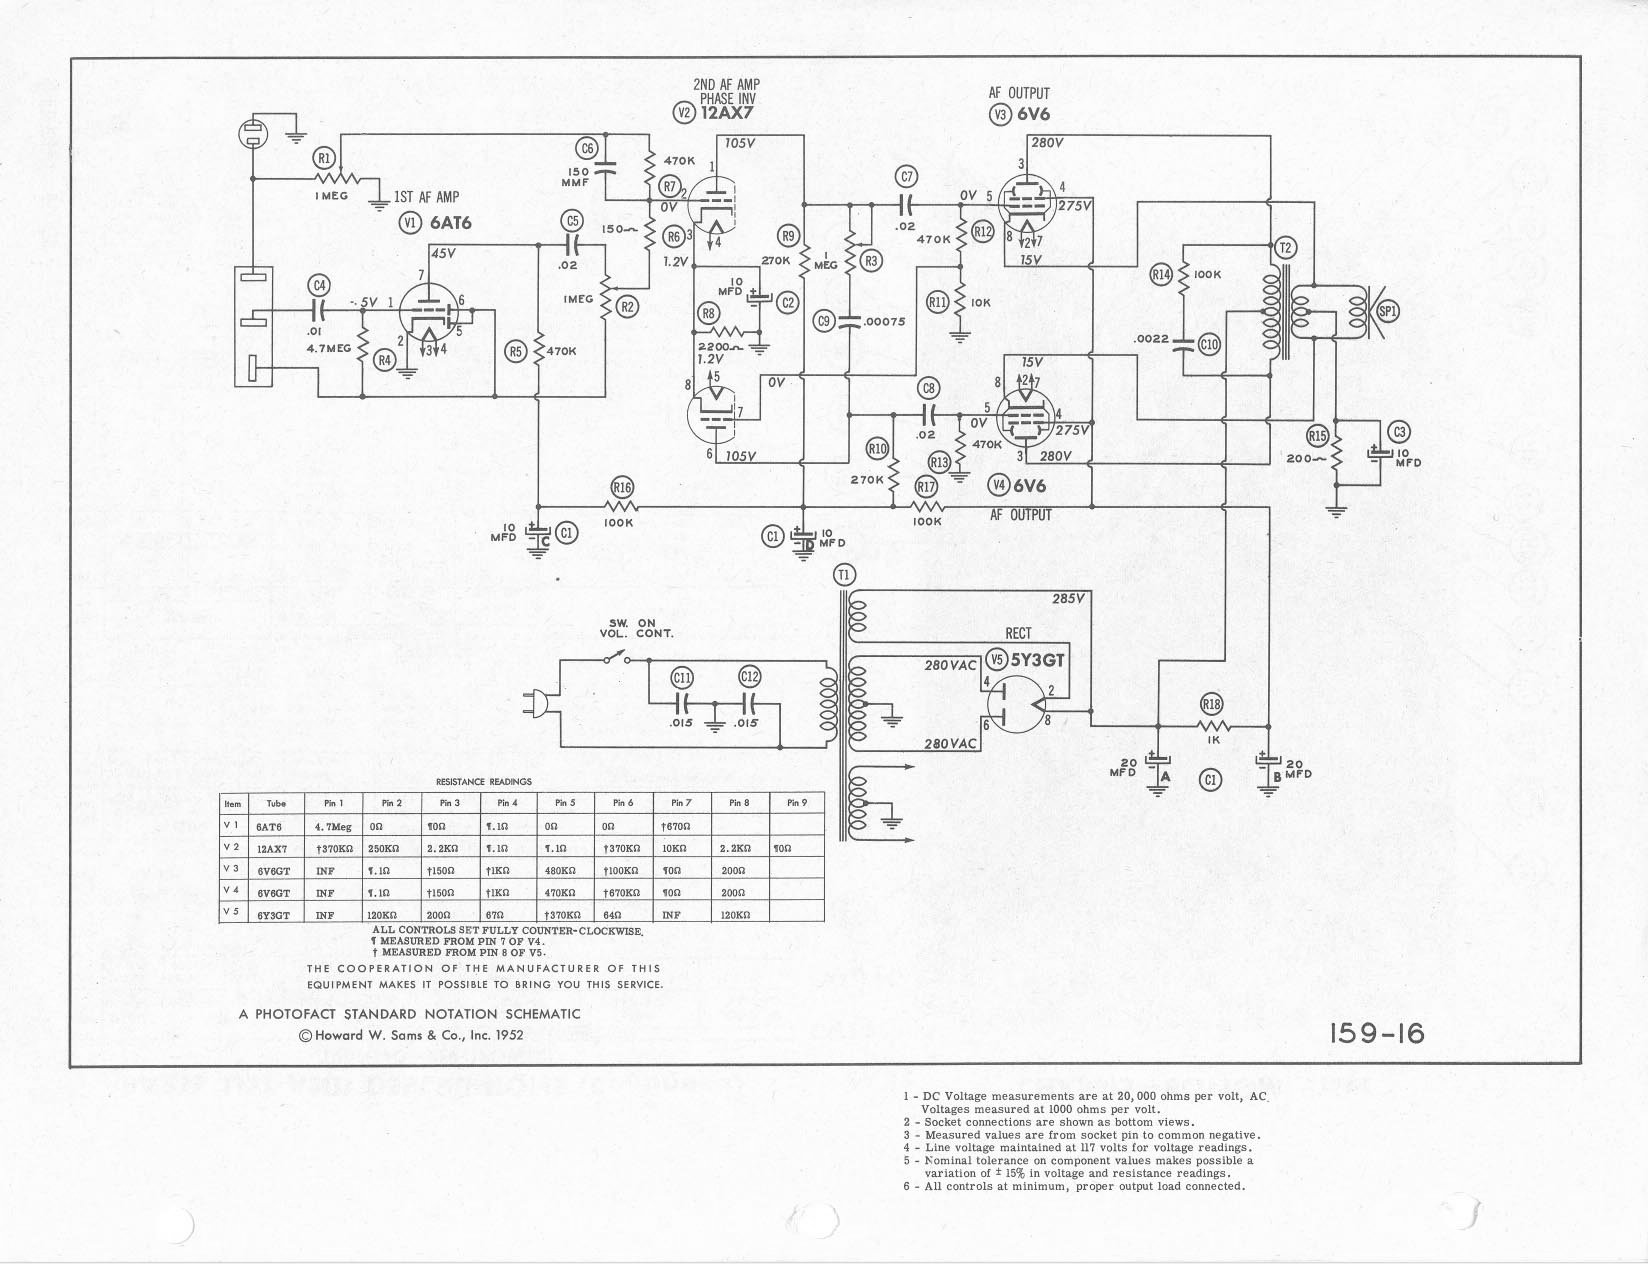 Circuits Restoration Project Webster Chicago 166 1 L53390 Ultrasonic Circuit Page 2 Audio Nextgr Schematic